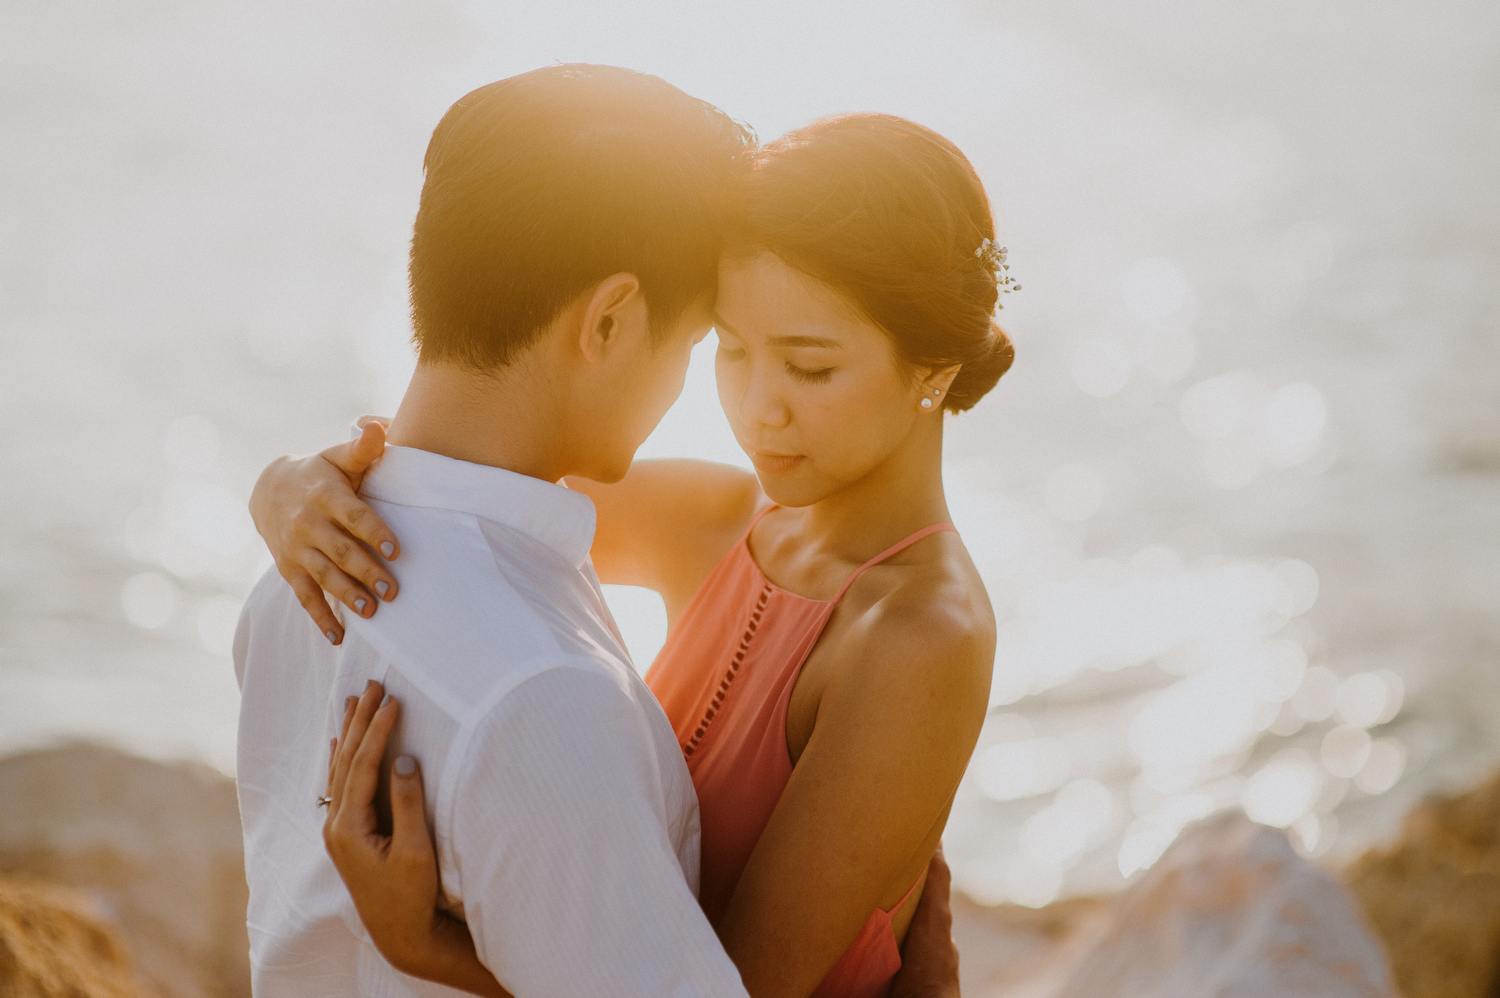 preweddinginbali-bali-batur-ubud-diktatphotography-engagemnet-baliweddingphotographer-weddinginbali-45